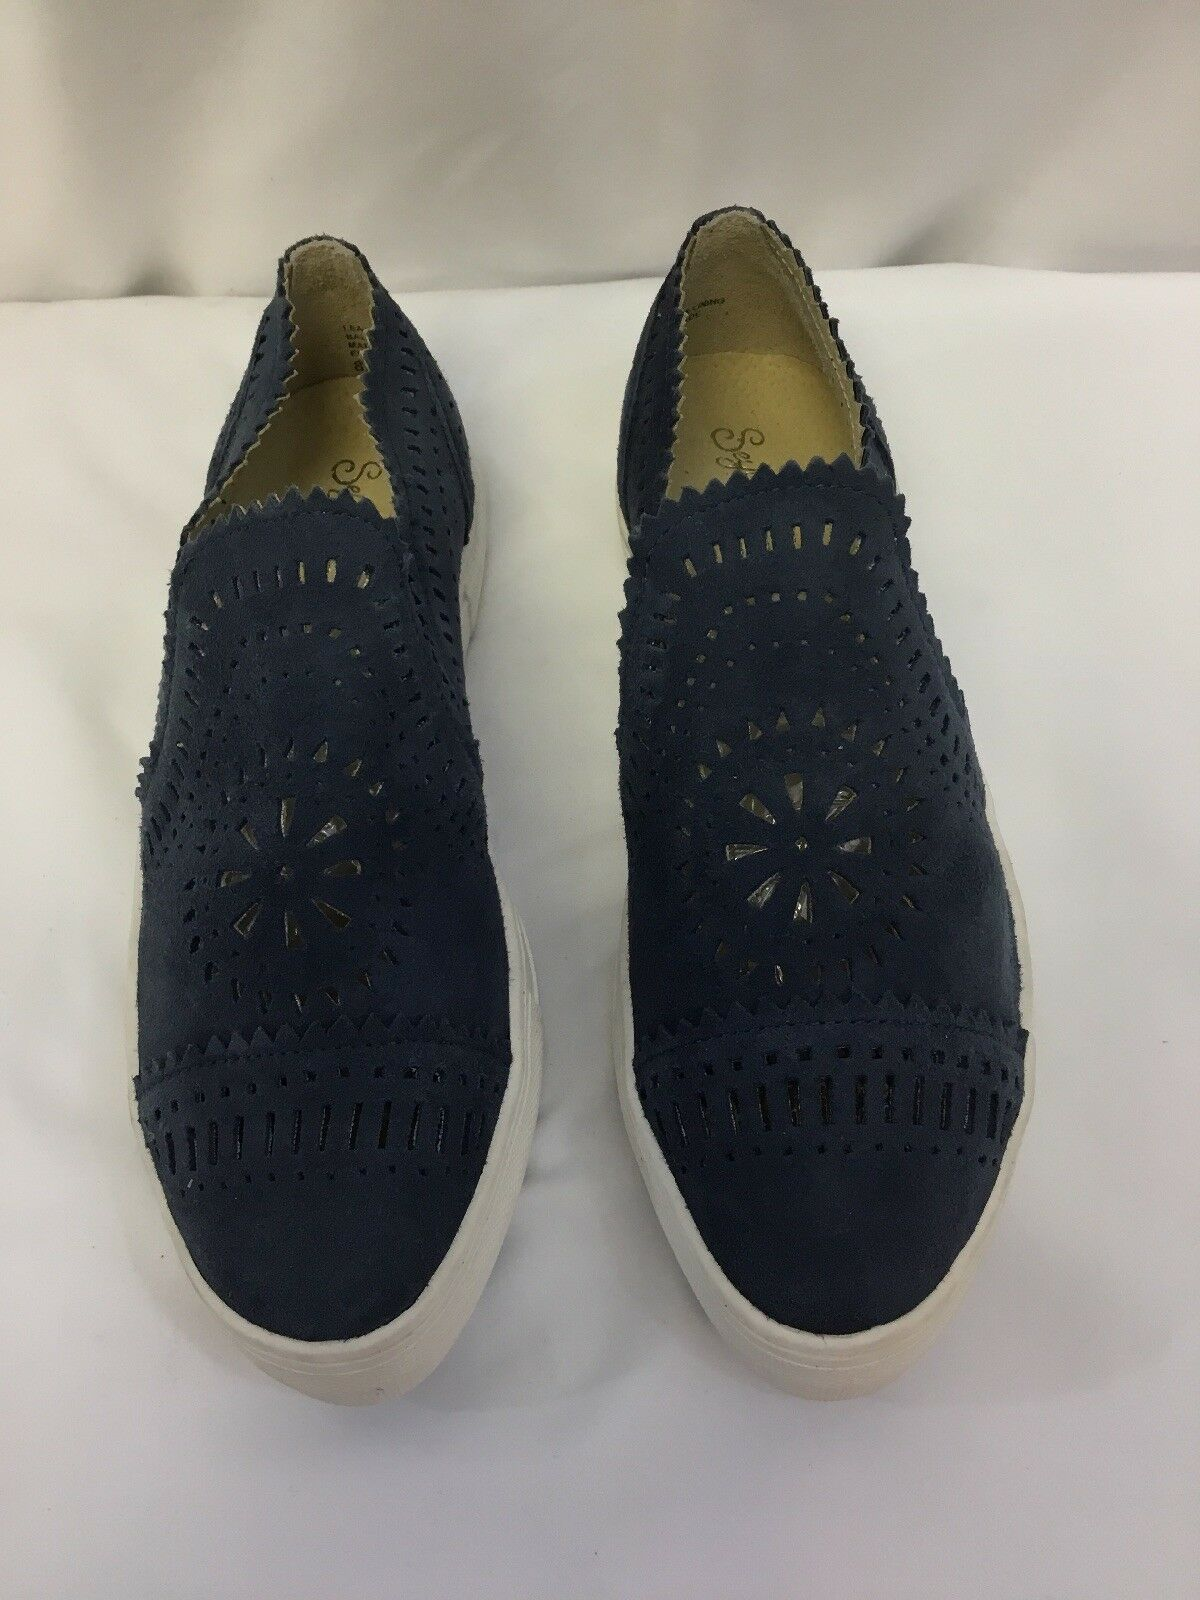 Seychelles So Nice Suede Slip-On Sneakers Indigo SIZE 8.5 8.5 8.5 a79f0c